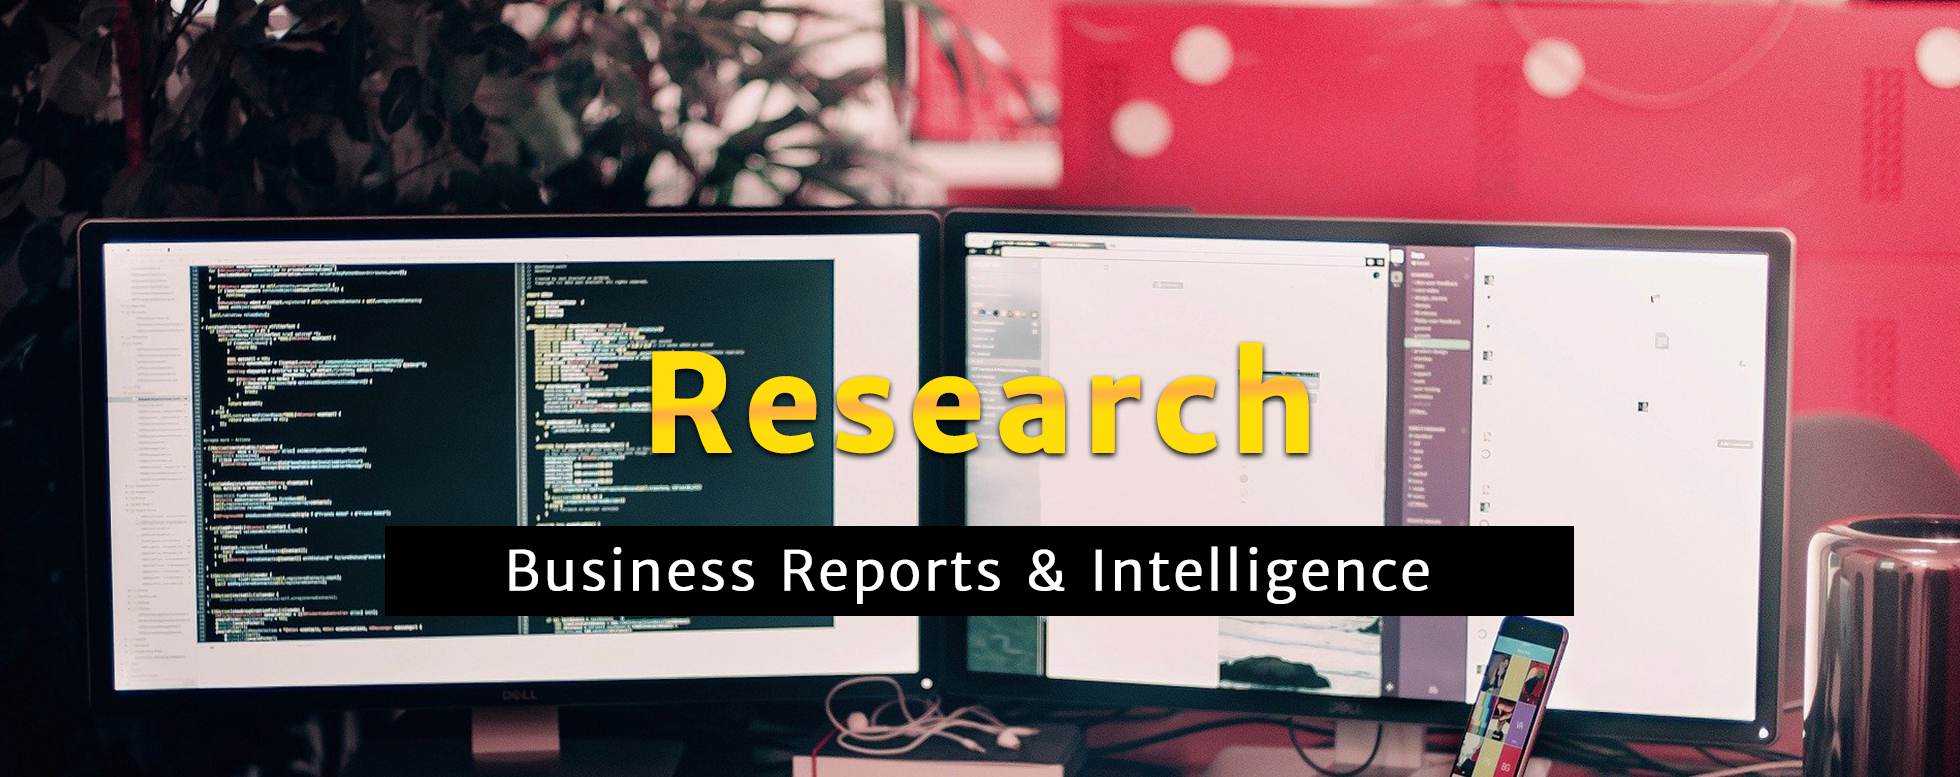 Client Research